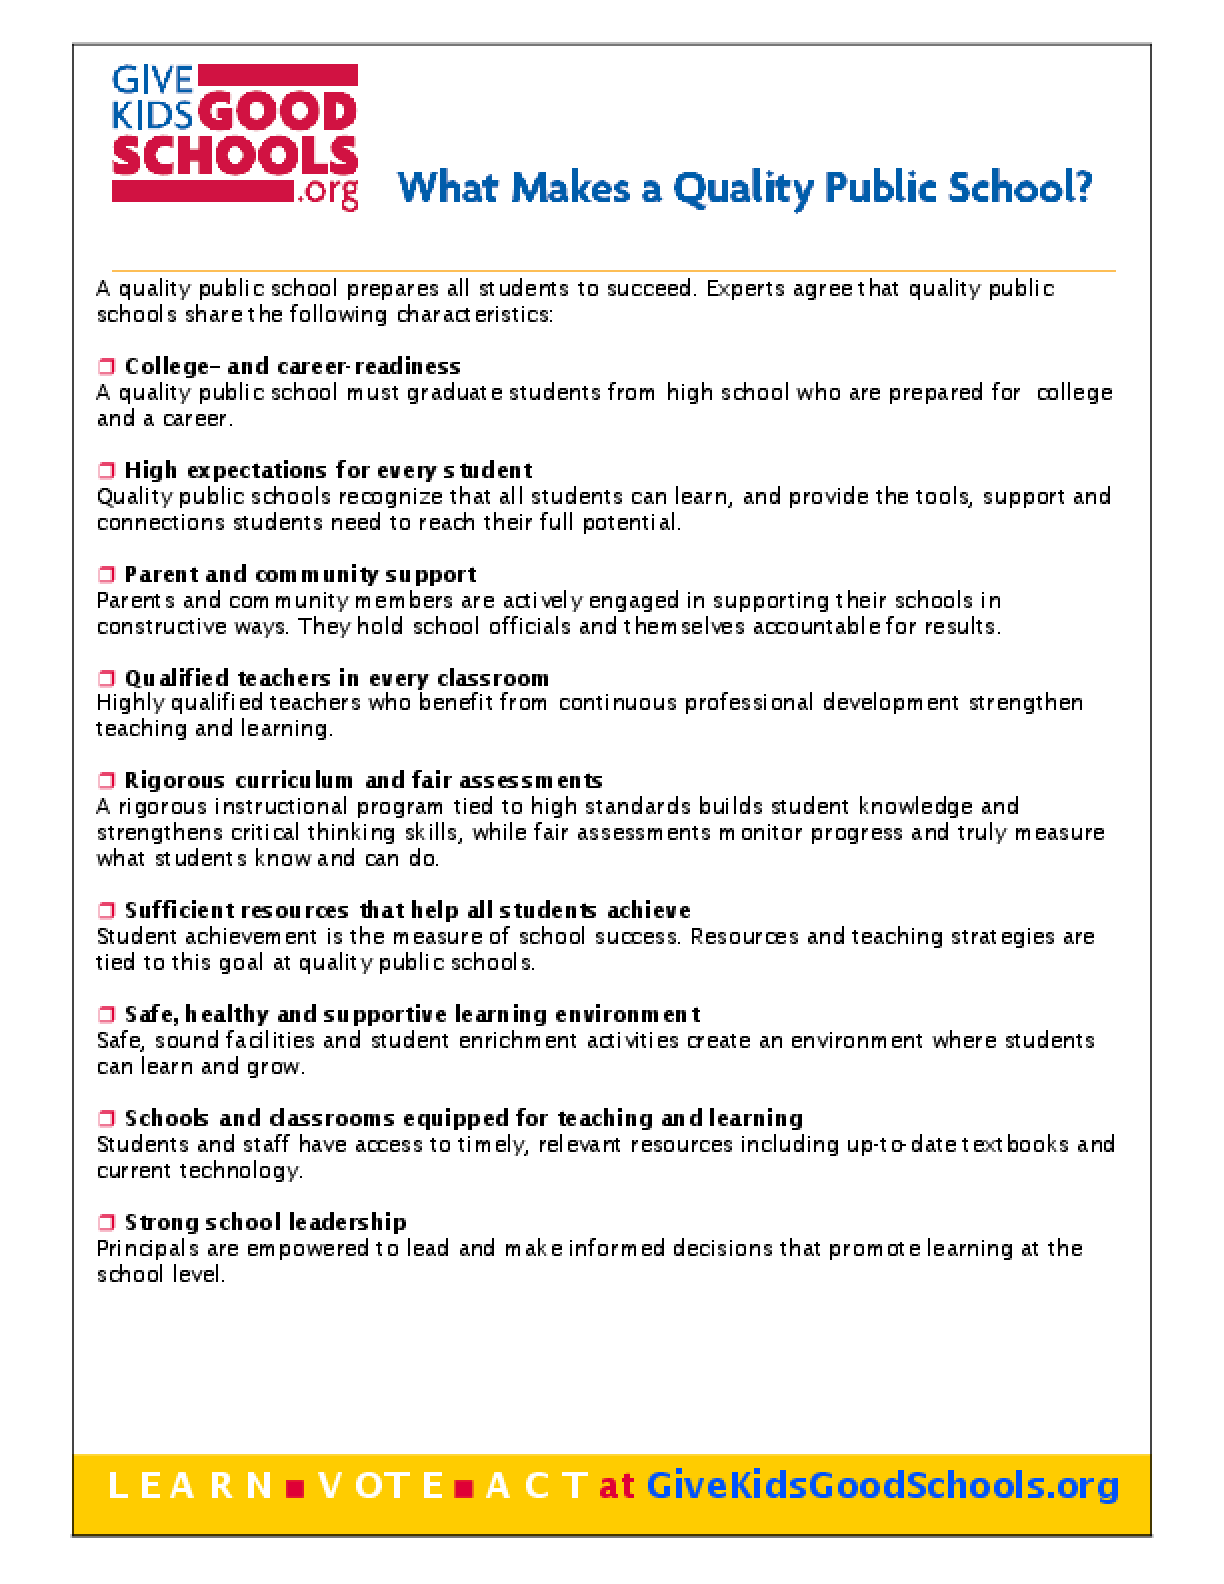 What Makes a Quality School?